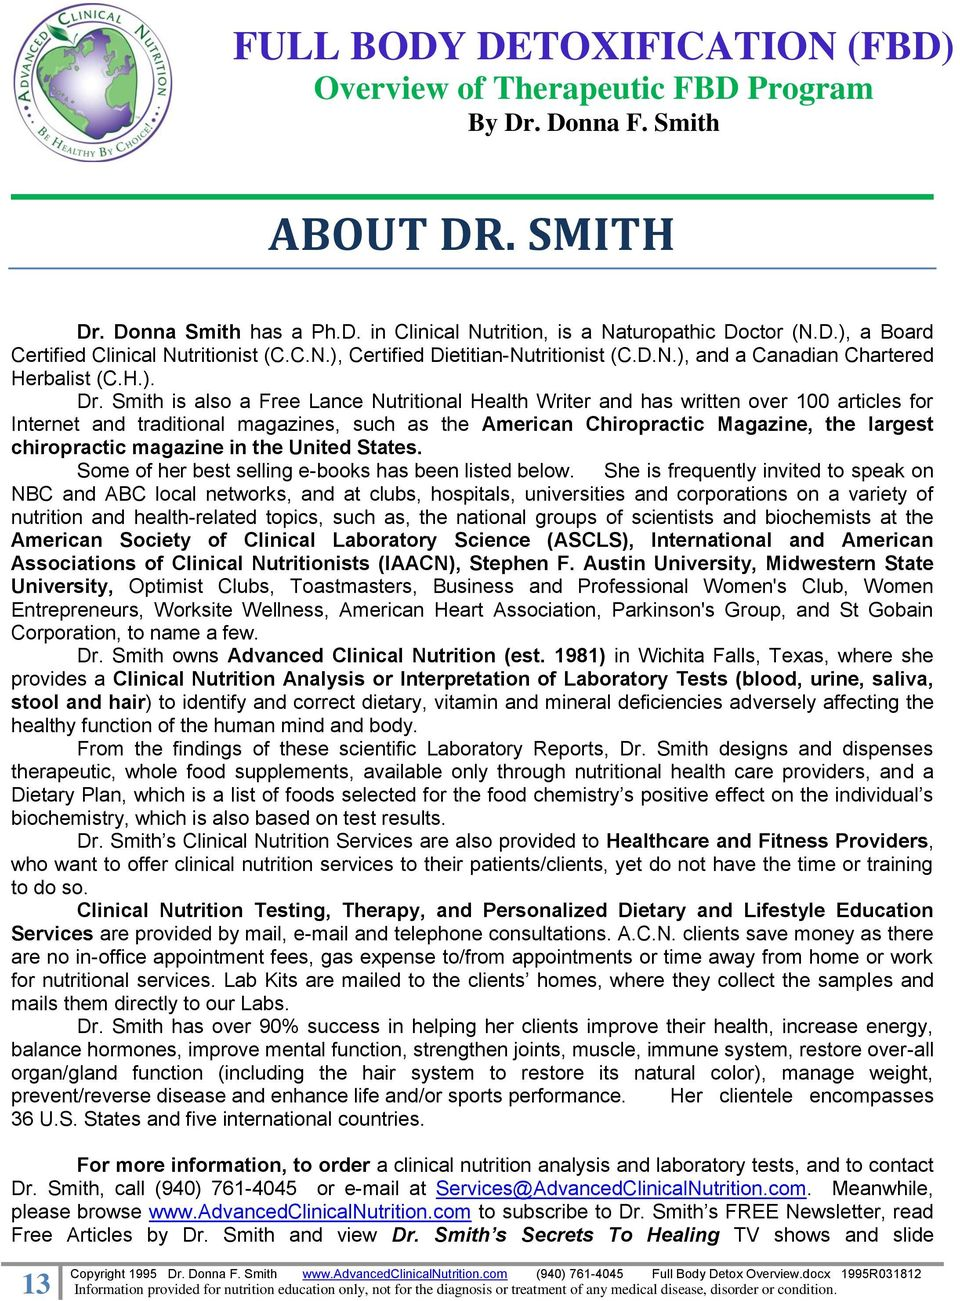 Smith is also a Free Lance Nutritional Health Writer and has written over 100 articles for Internet and traditional magazines, such as the American Chiropractic Magazine, the largest chiropractic